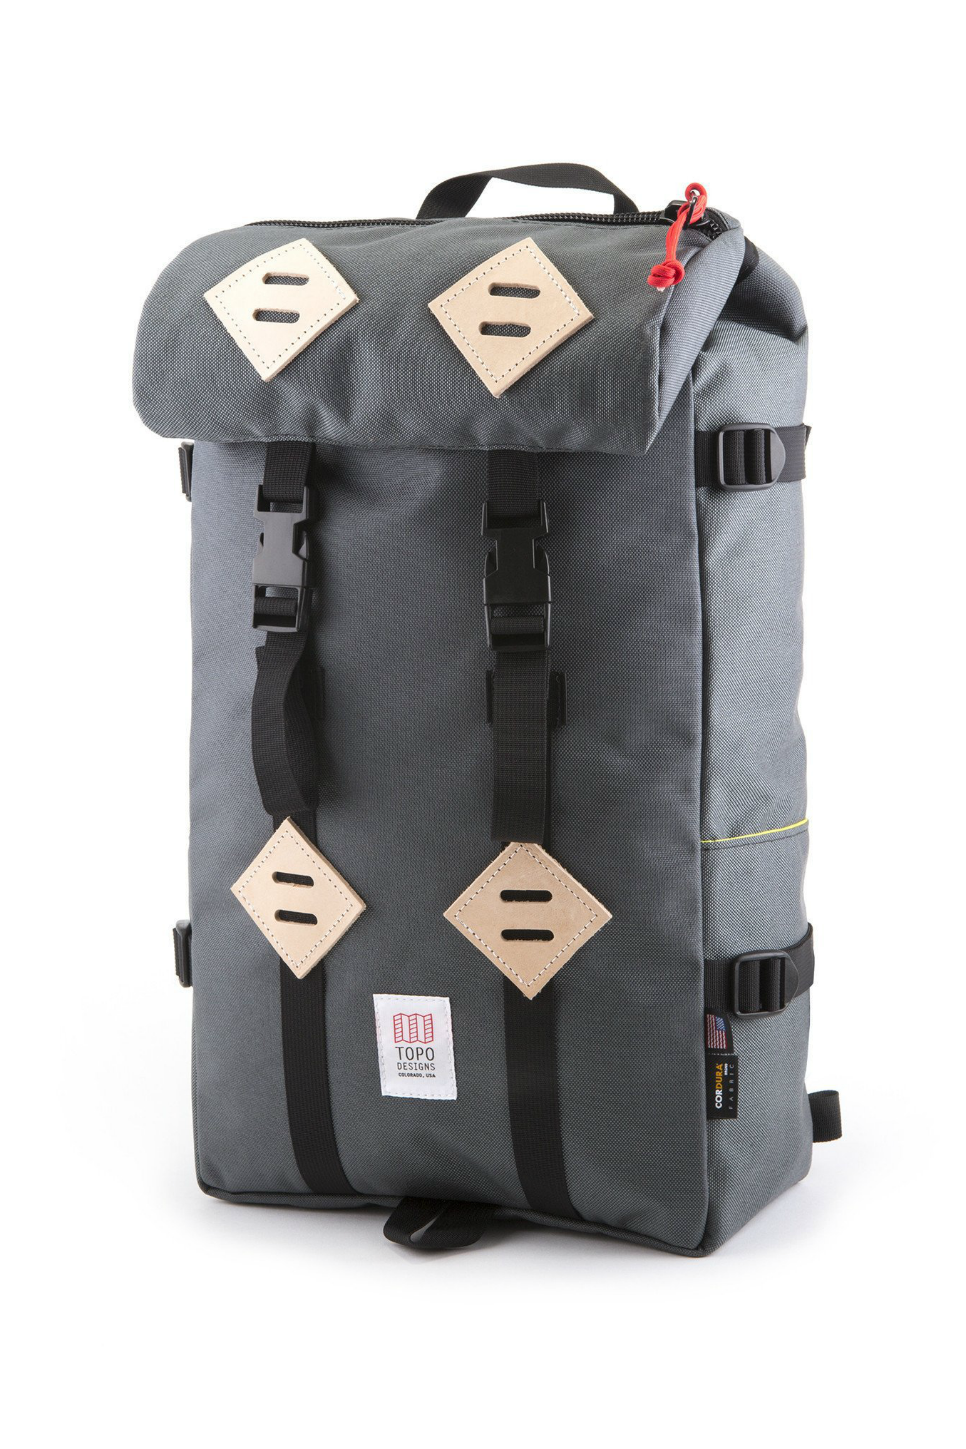 KLETTERSACK - CHARCOAL